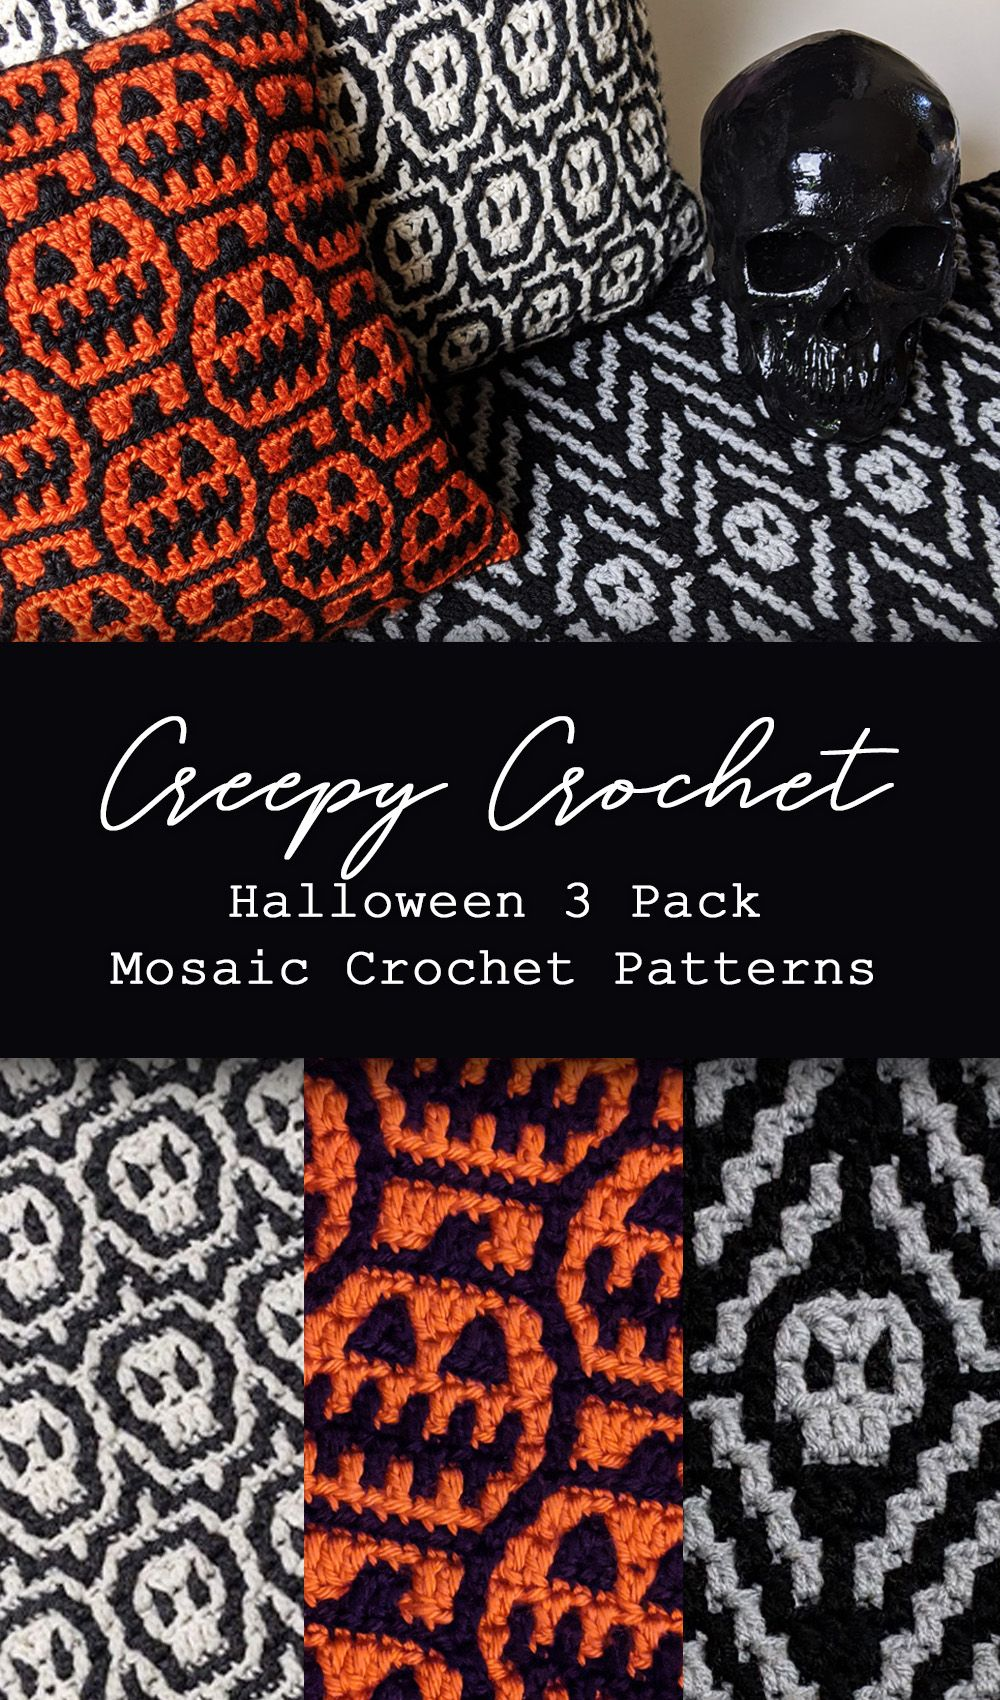 Creepy Crochet 3 Pack of Mosaic Crochet Patterns by Sixel